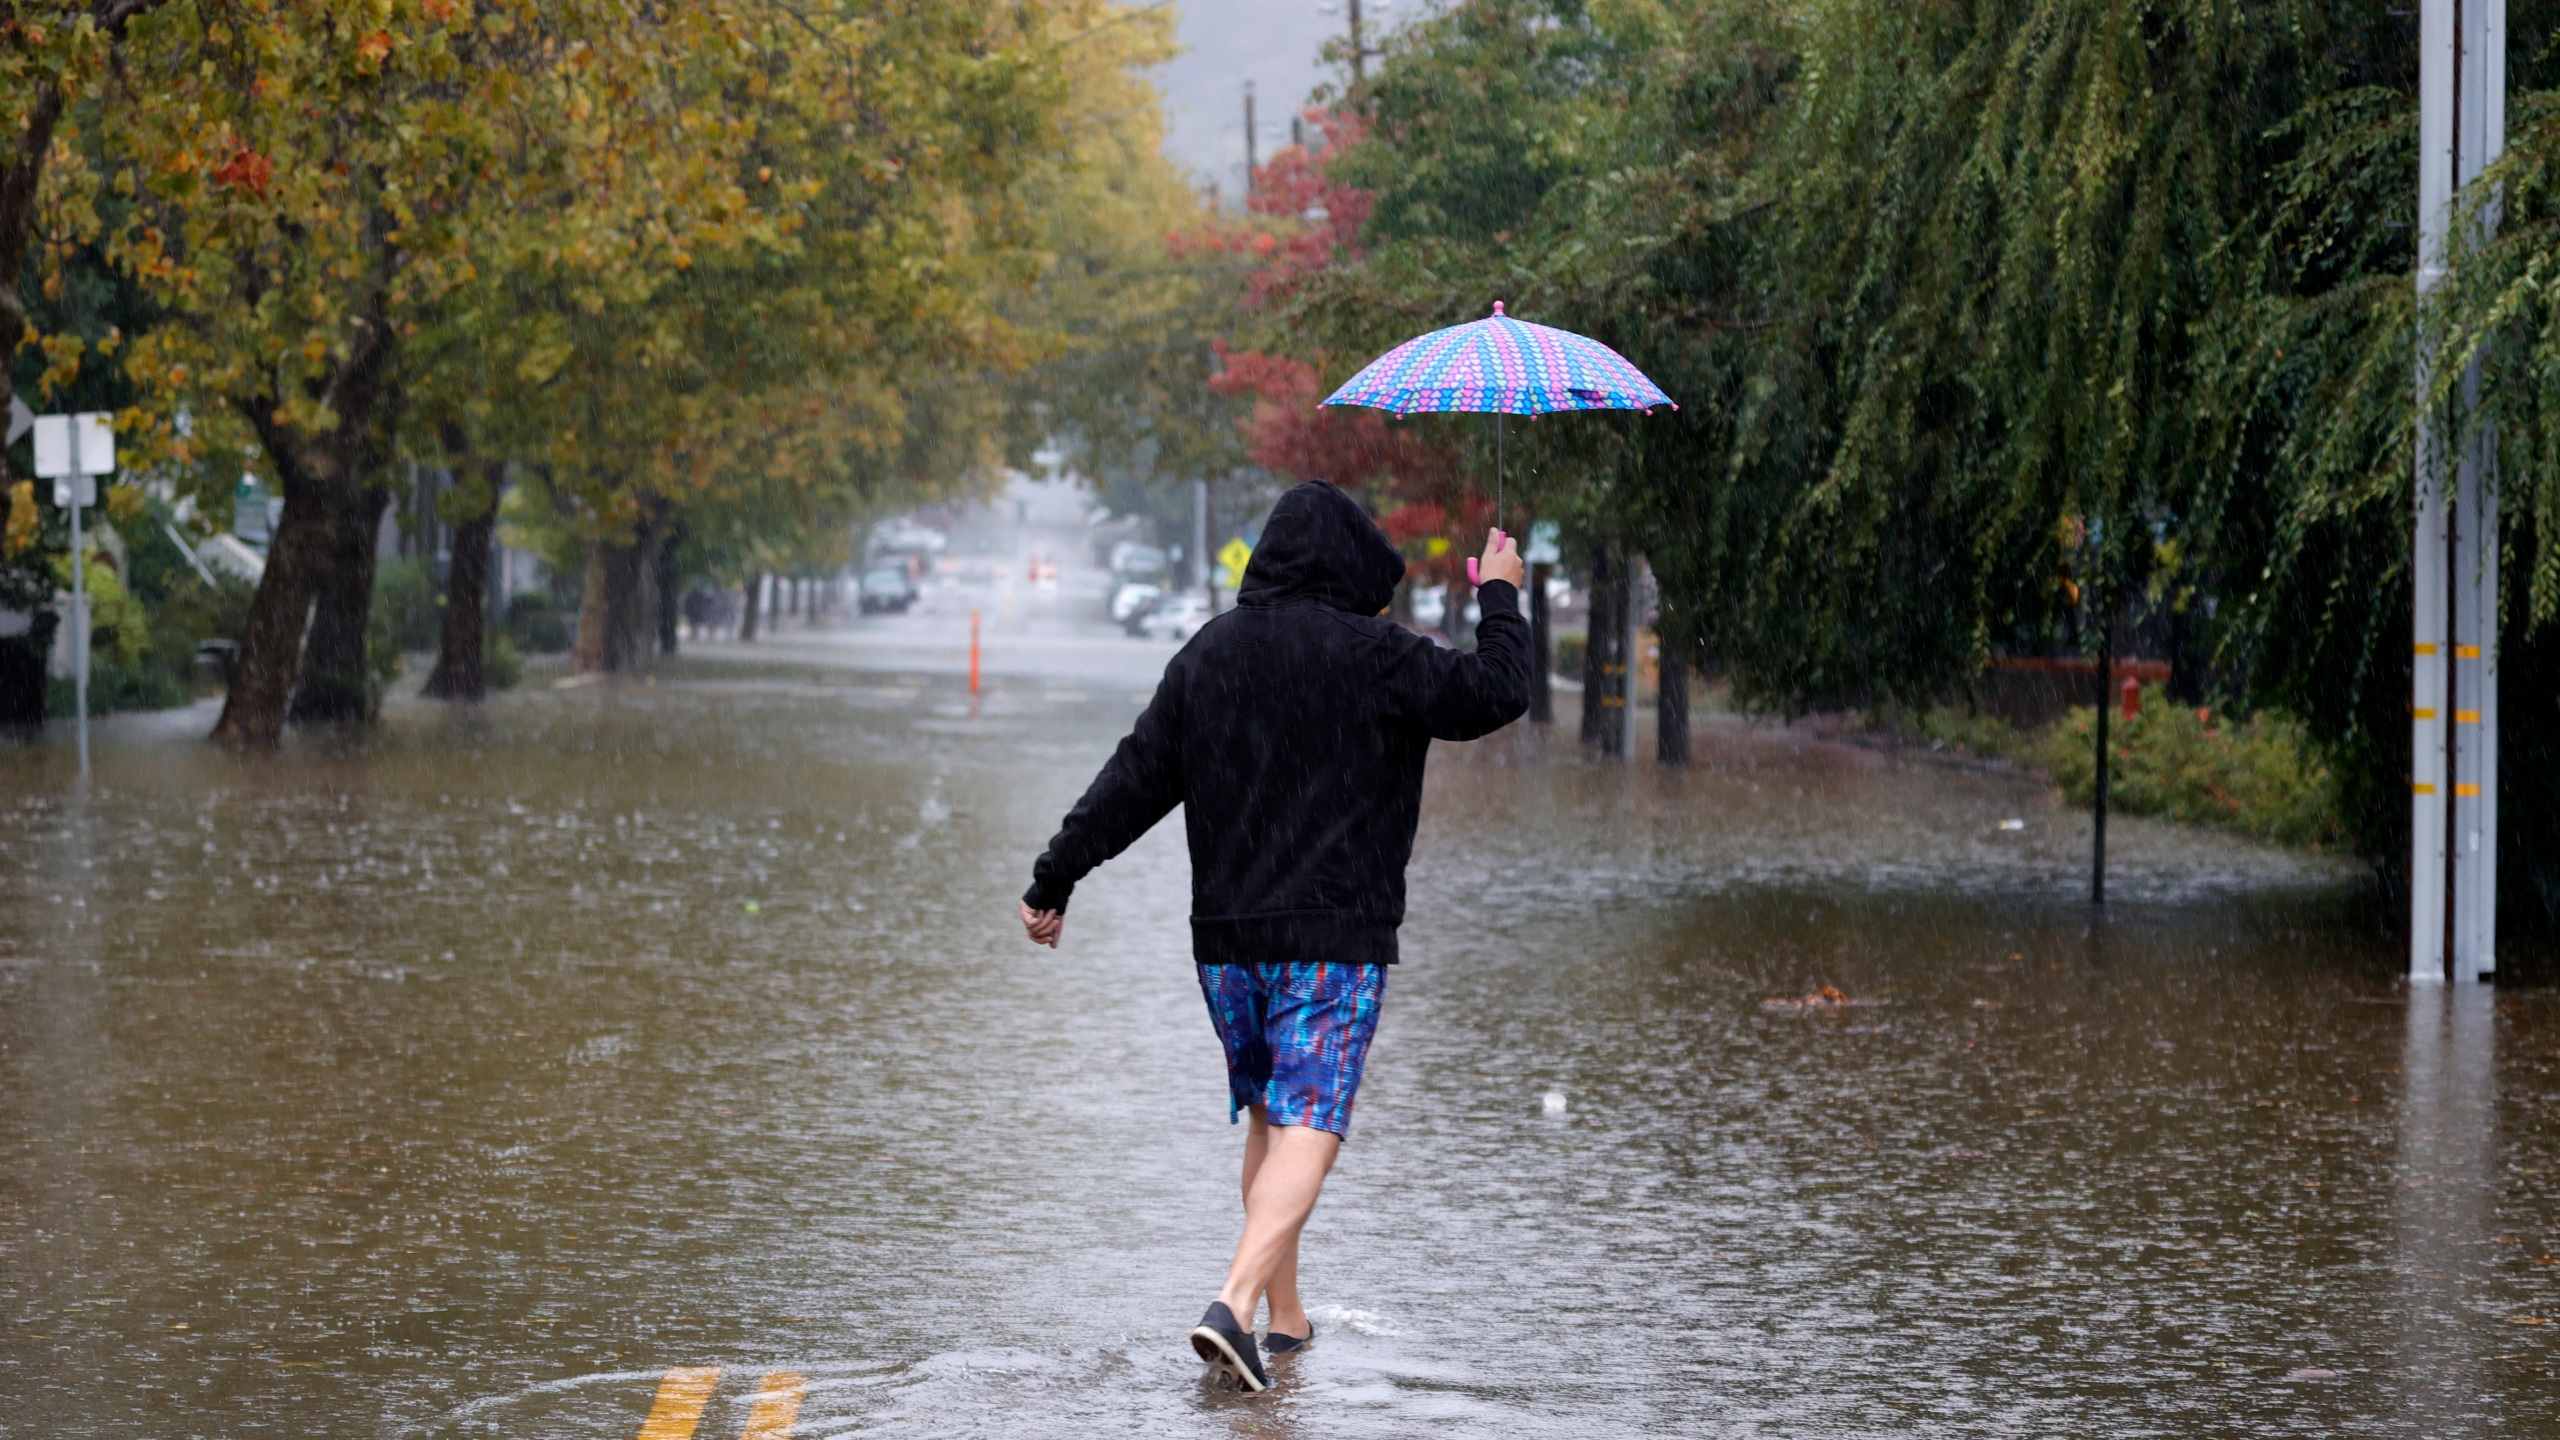 A pedestrian carries an umbrella as he walks on a flooded street on Oct. 24, 2021 in San Rafael. (Justin Sullivan/Getty Images)